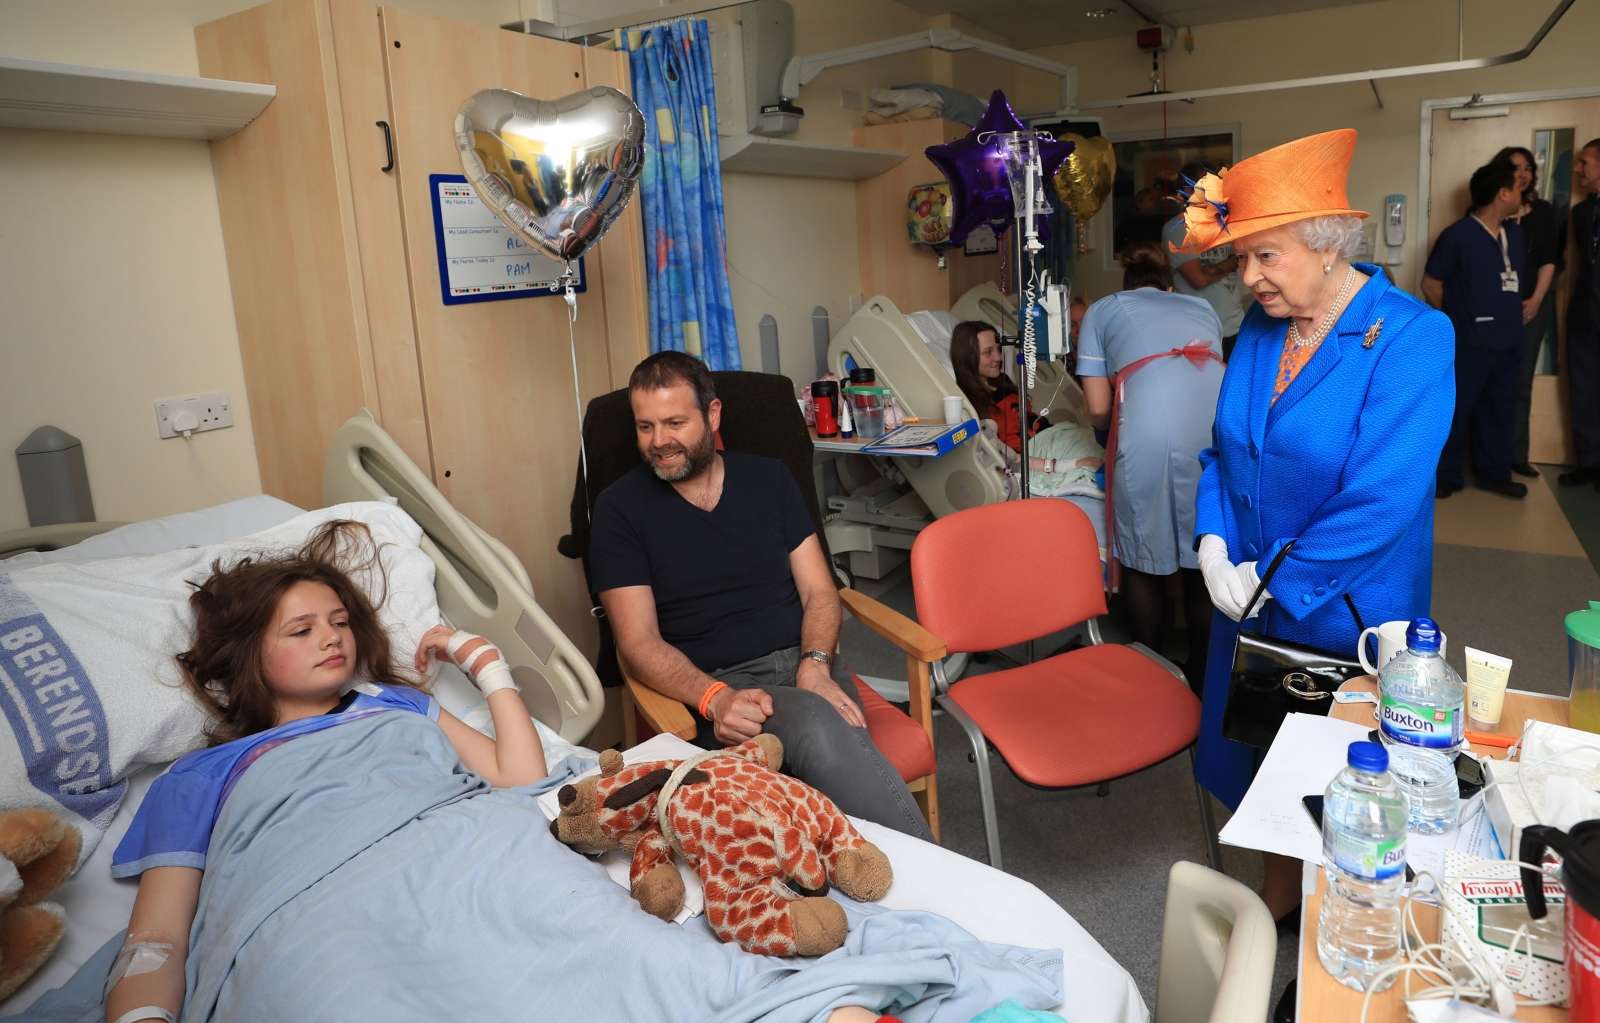 Queen Elizabeth visits bombing victims at the Royal Manchester Children's Hospital